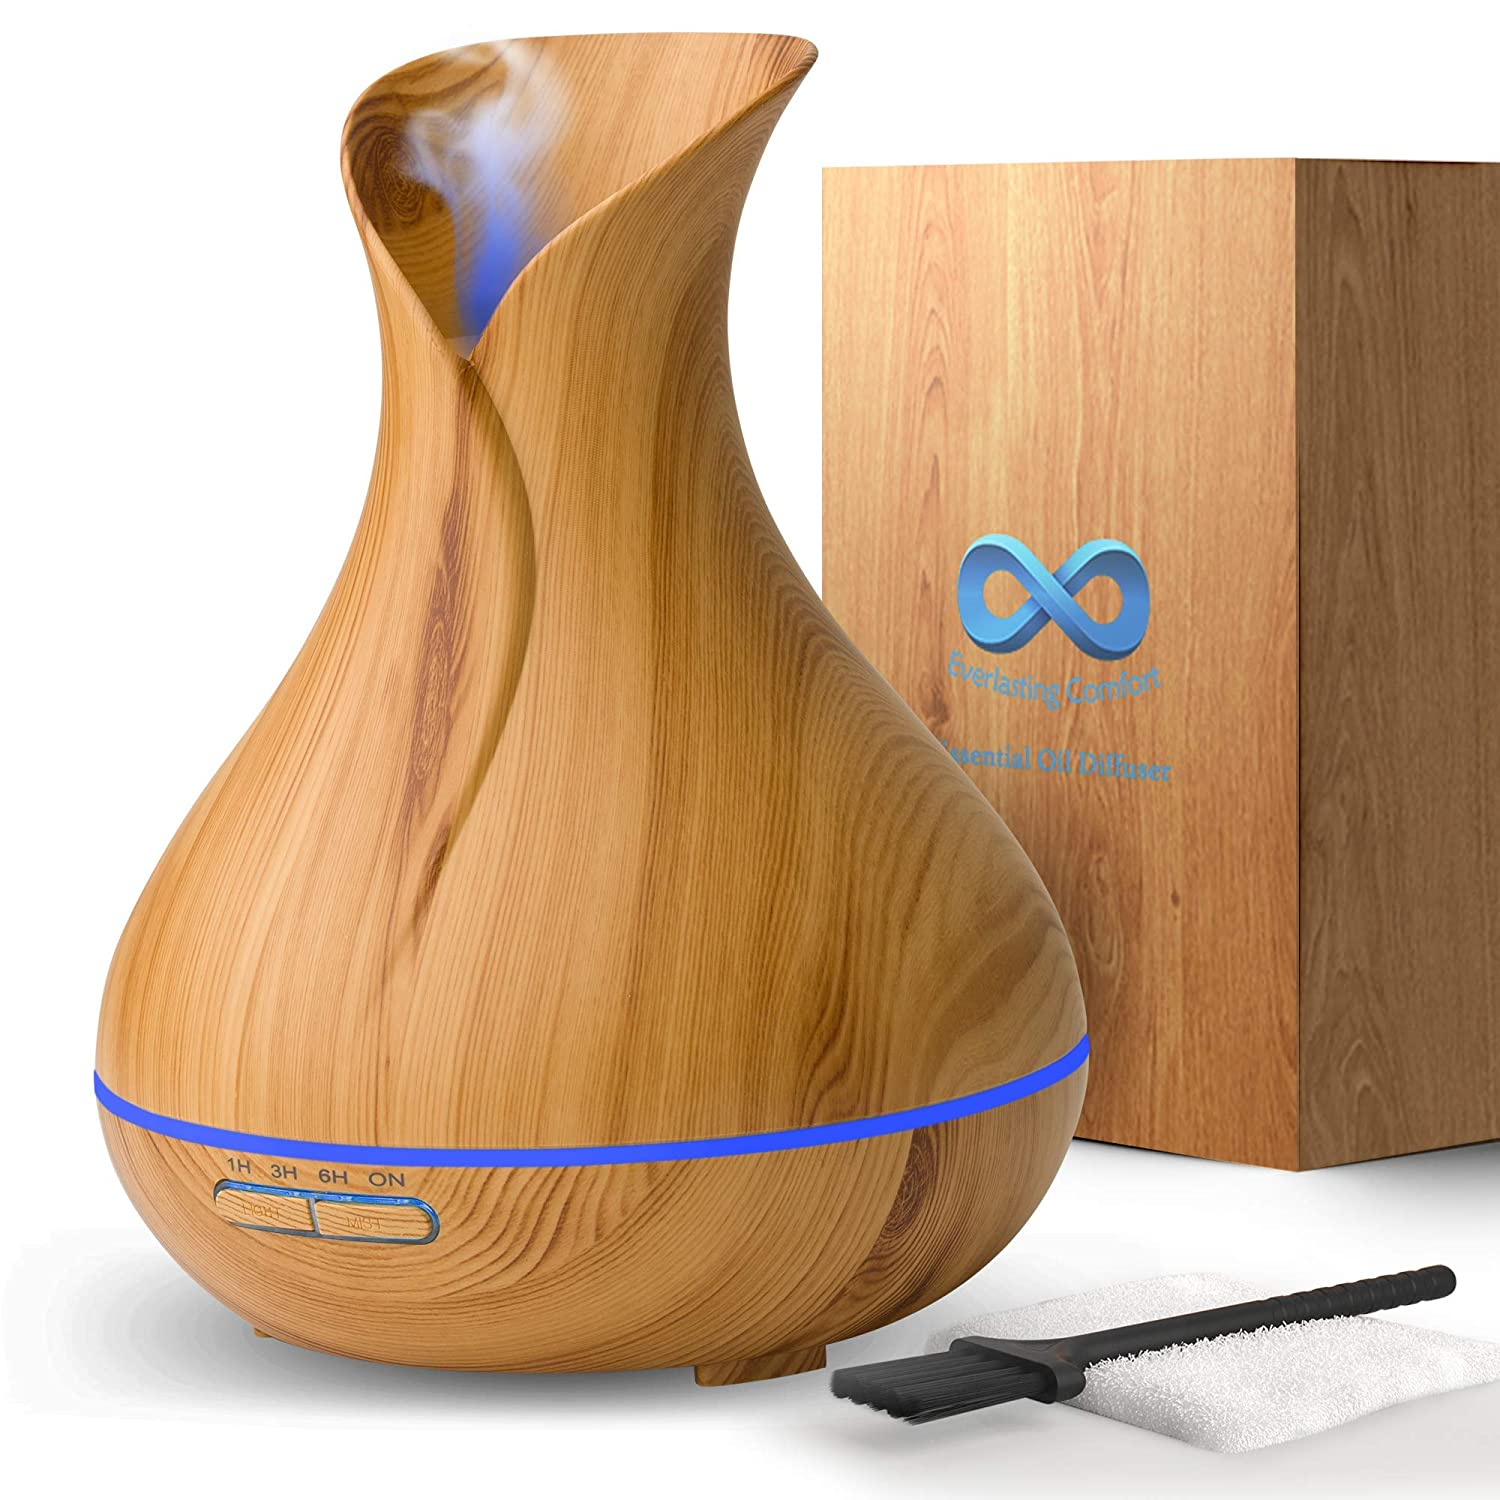 Diffuser for Essential Oils (400ml) - Super High Aroma Output, FREE Cleaning Kit - Dark Wood Essential Oil Diffuser Everlasting Comfort